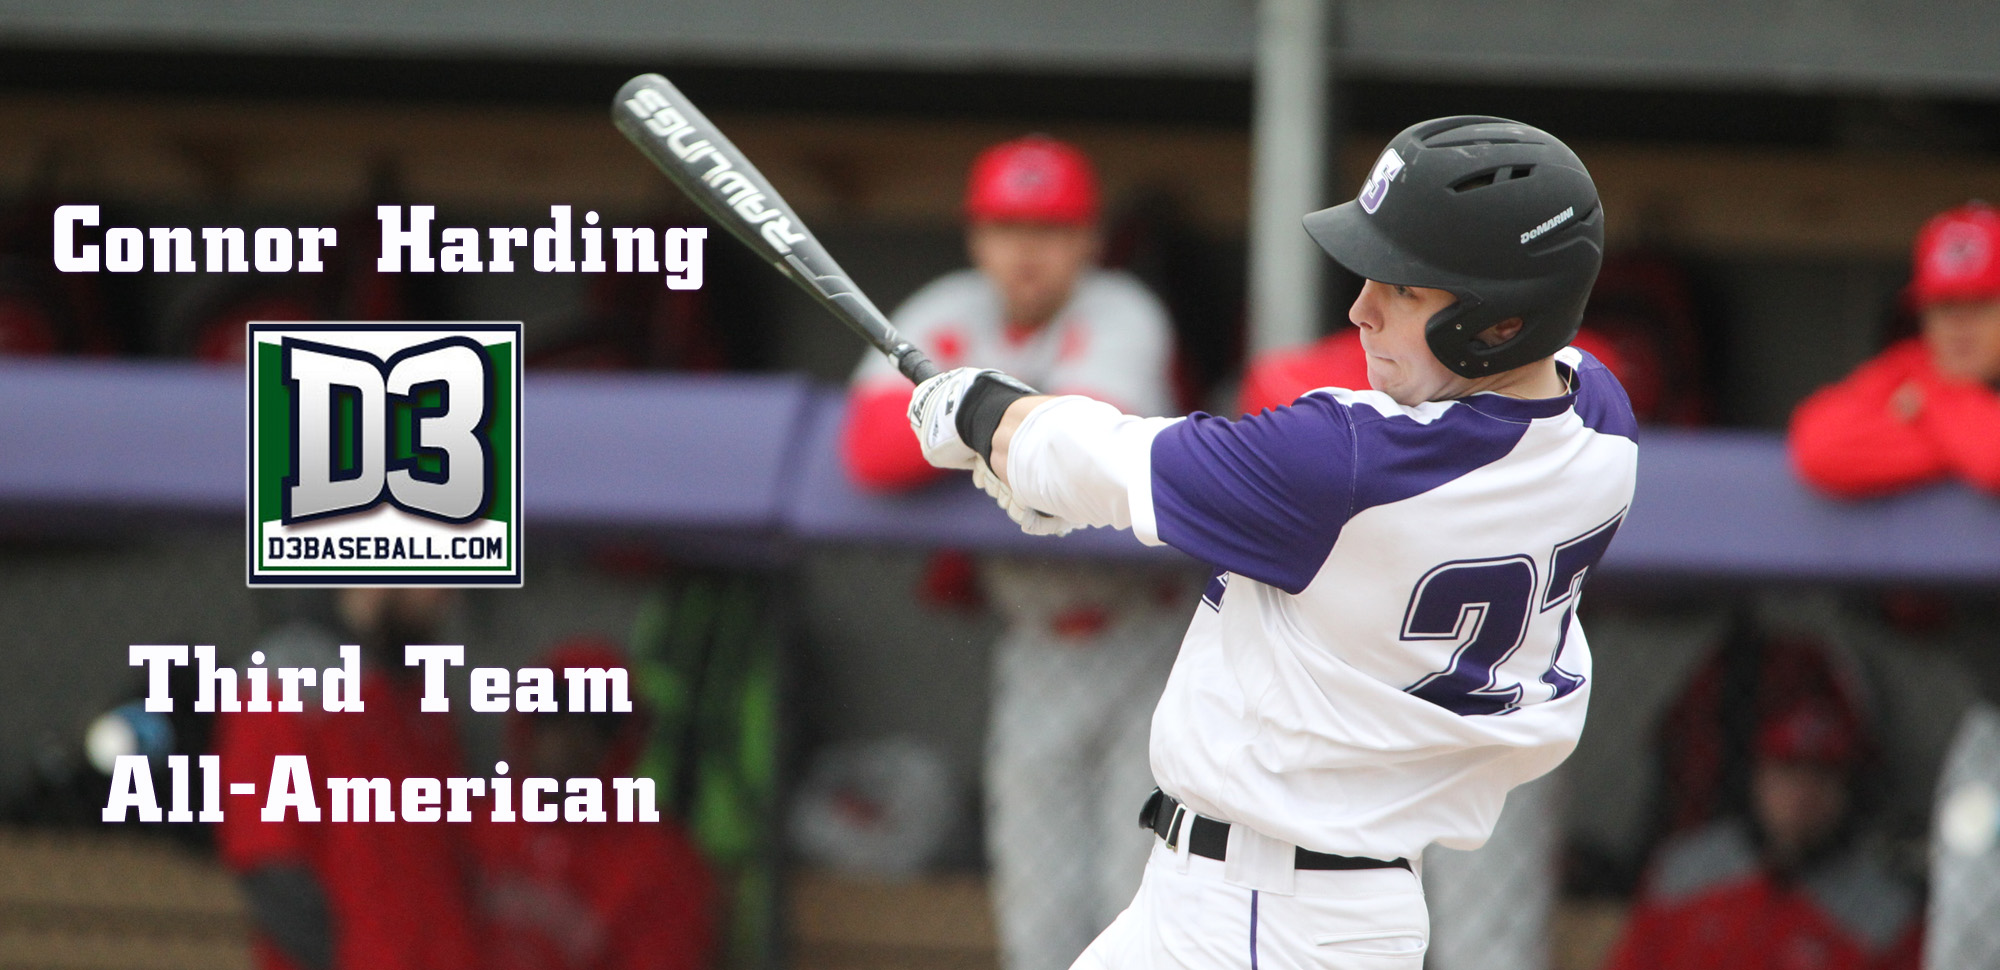 Sophomore Connor Harding became Scranton's first-ever D3baseball.com All-American on Tuesday. © Photo by Timothy R. Dougherty / doubleeaglephotography.com